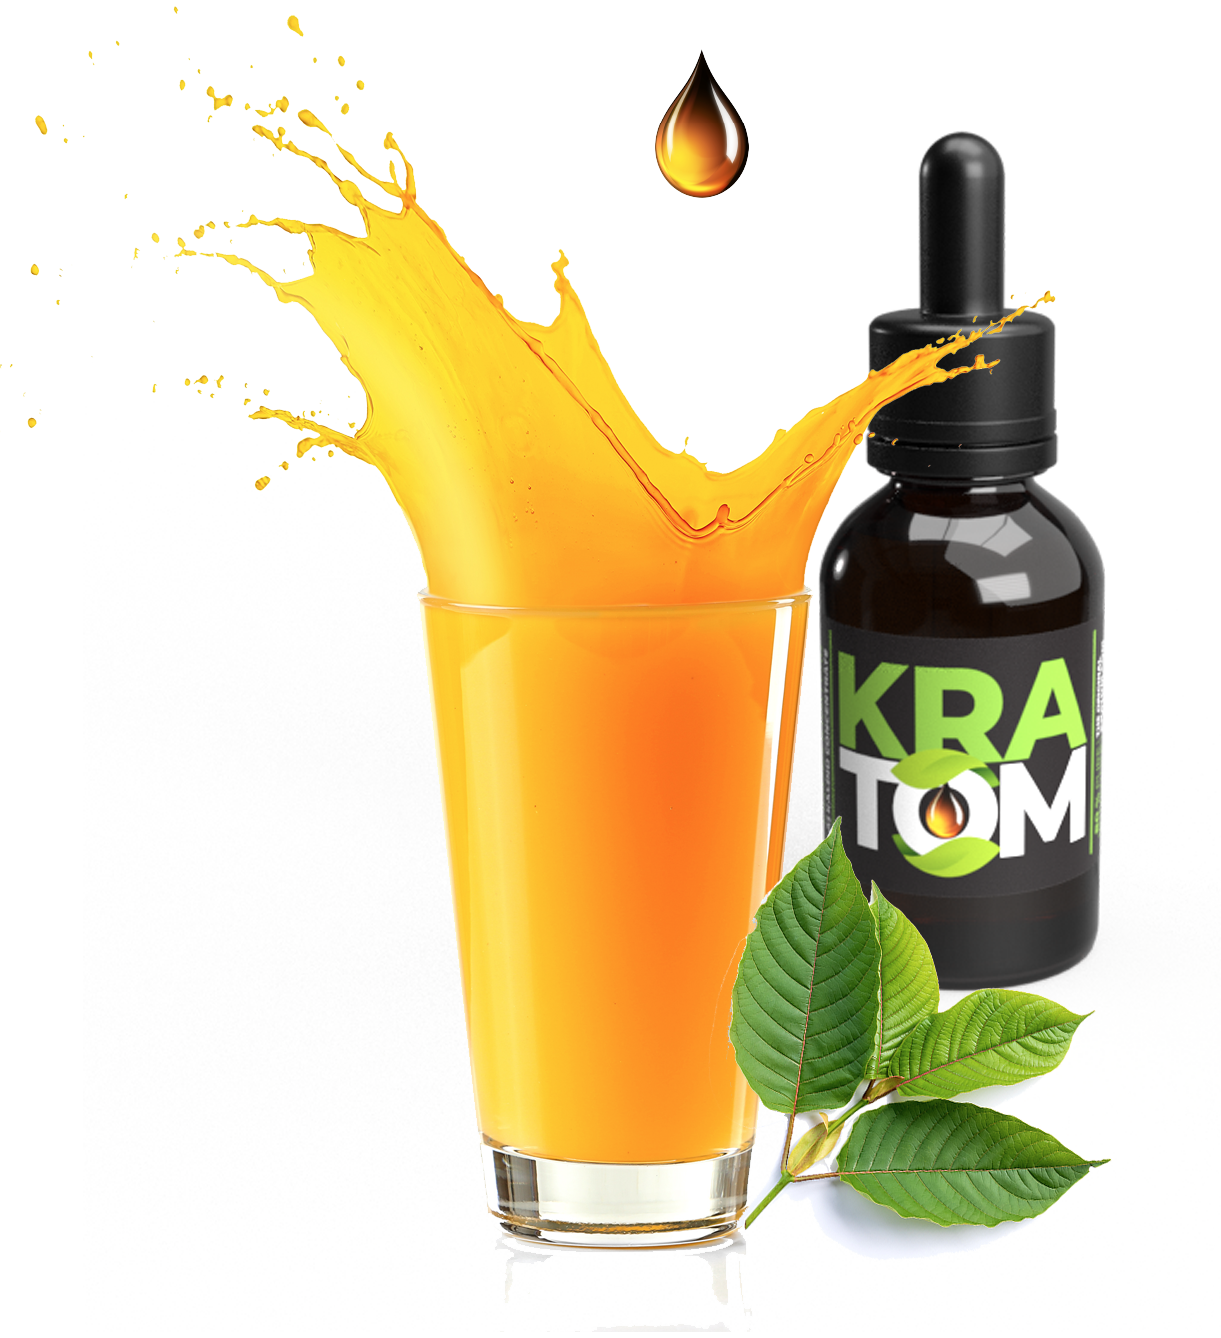 The future is here - the world's first Pure Mitragynine Kratom Extract - Kratom.com